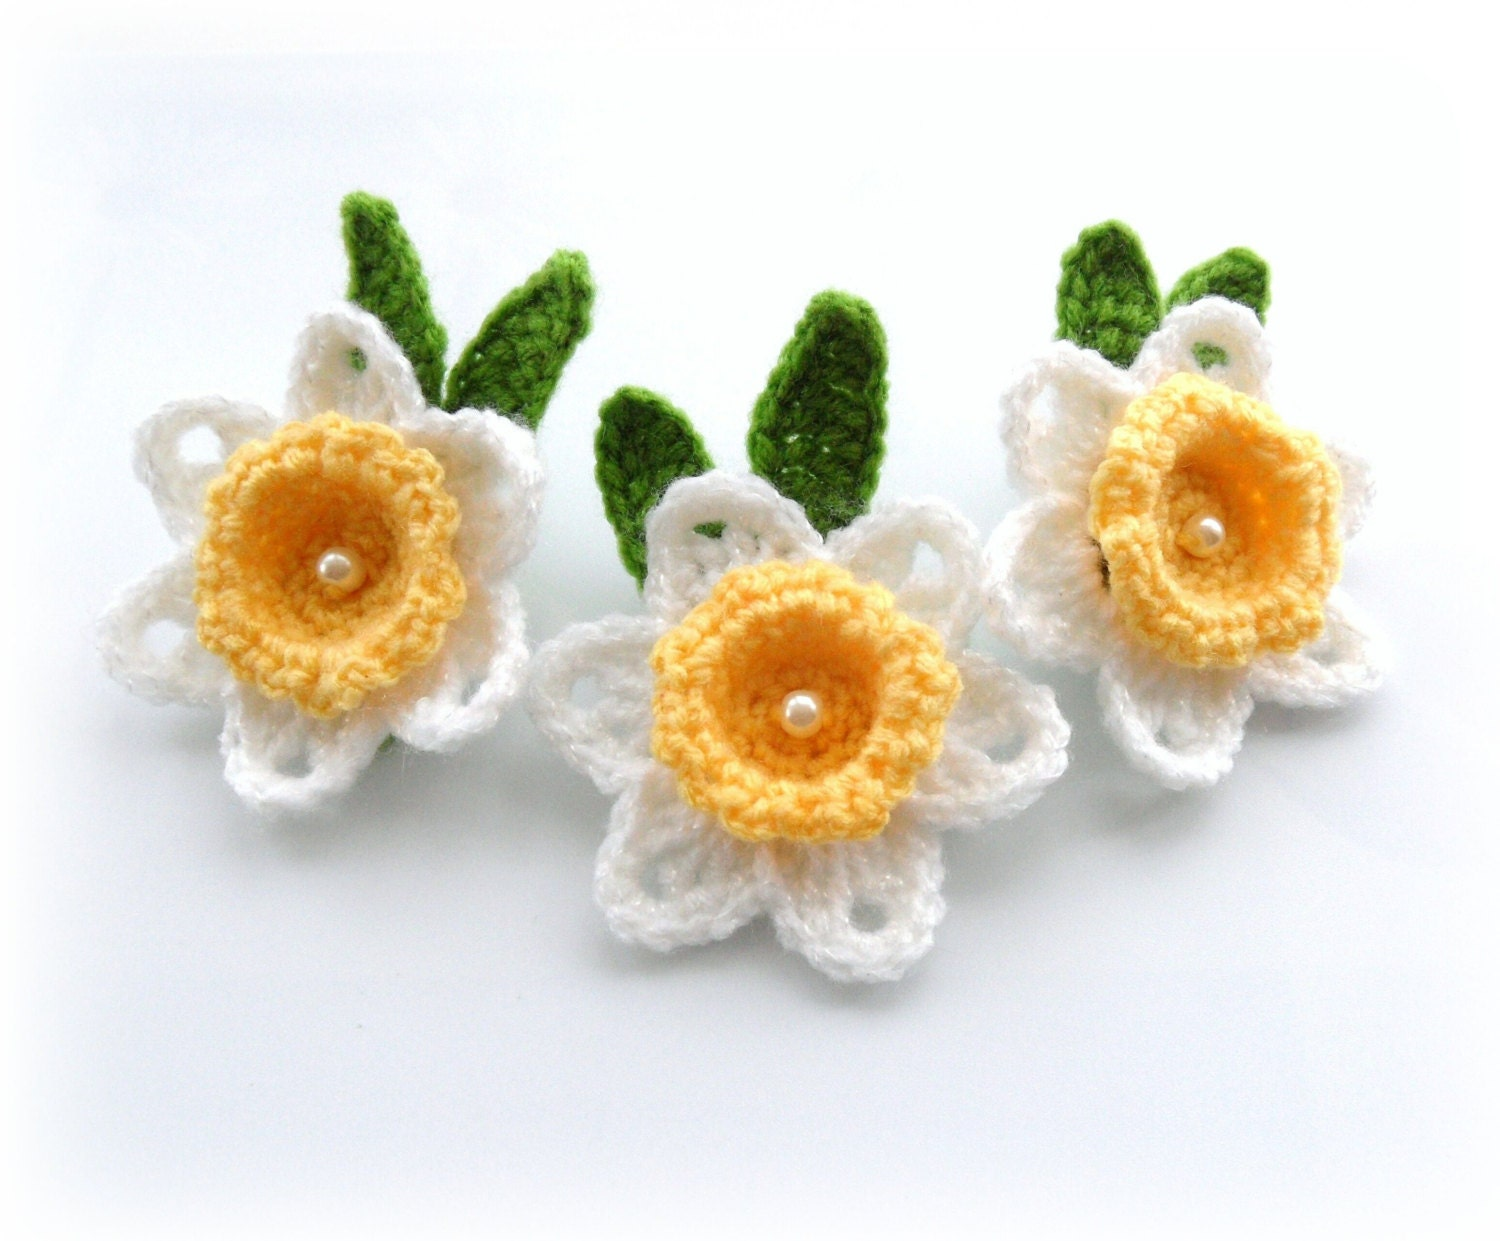 Crochet Applique Daffodil Flowers Crochet Daffodil Brooches